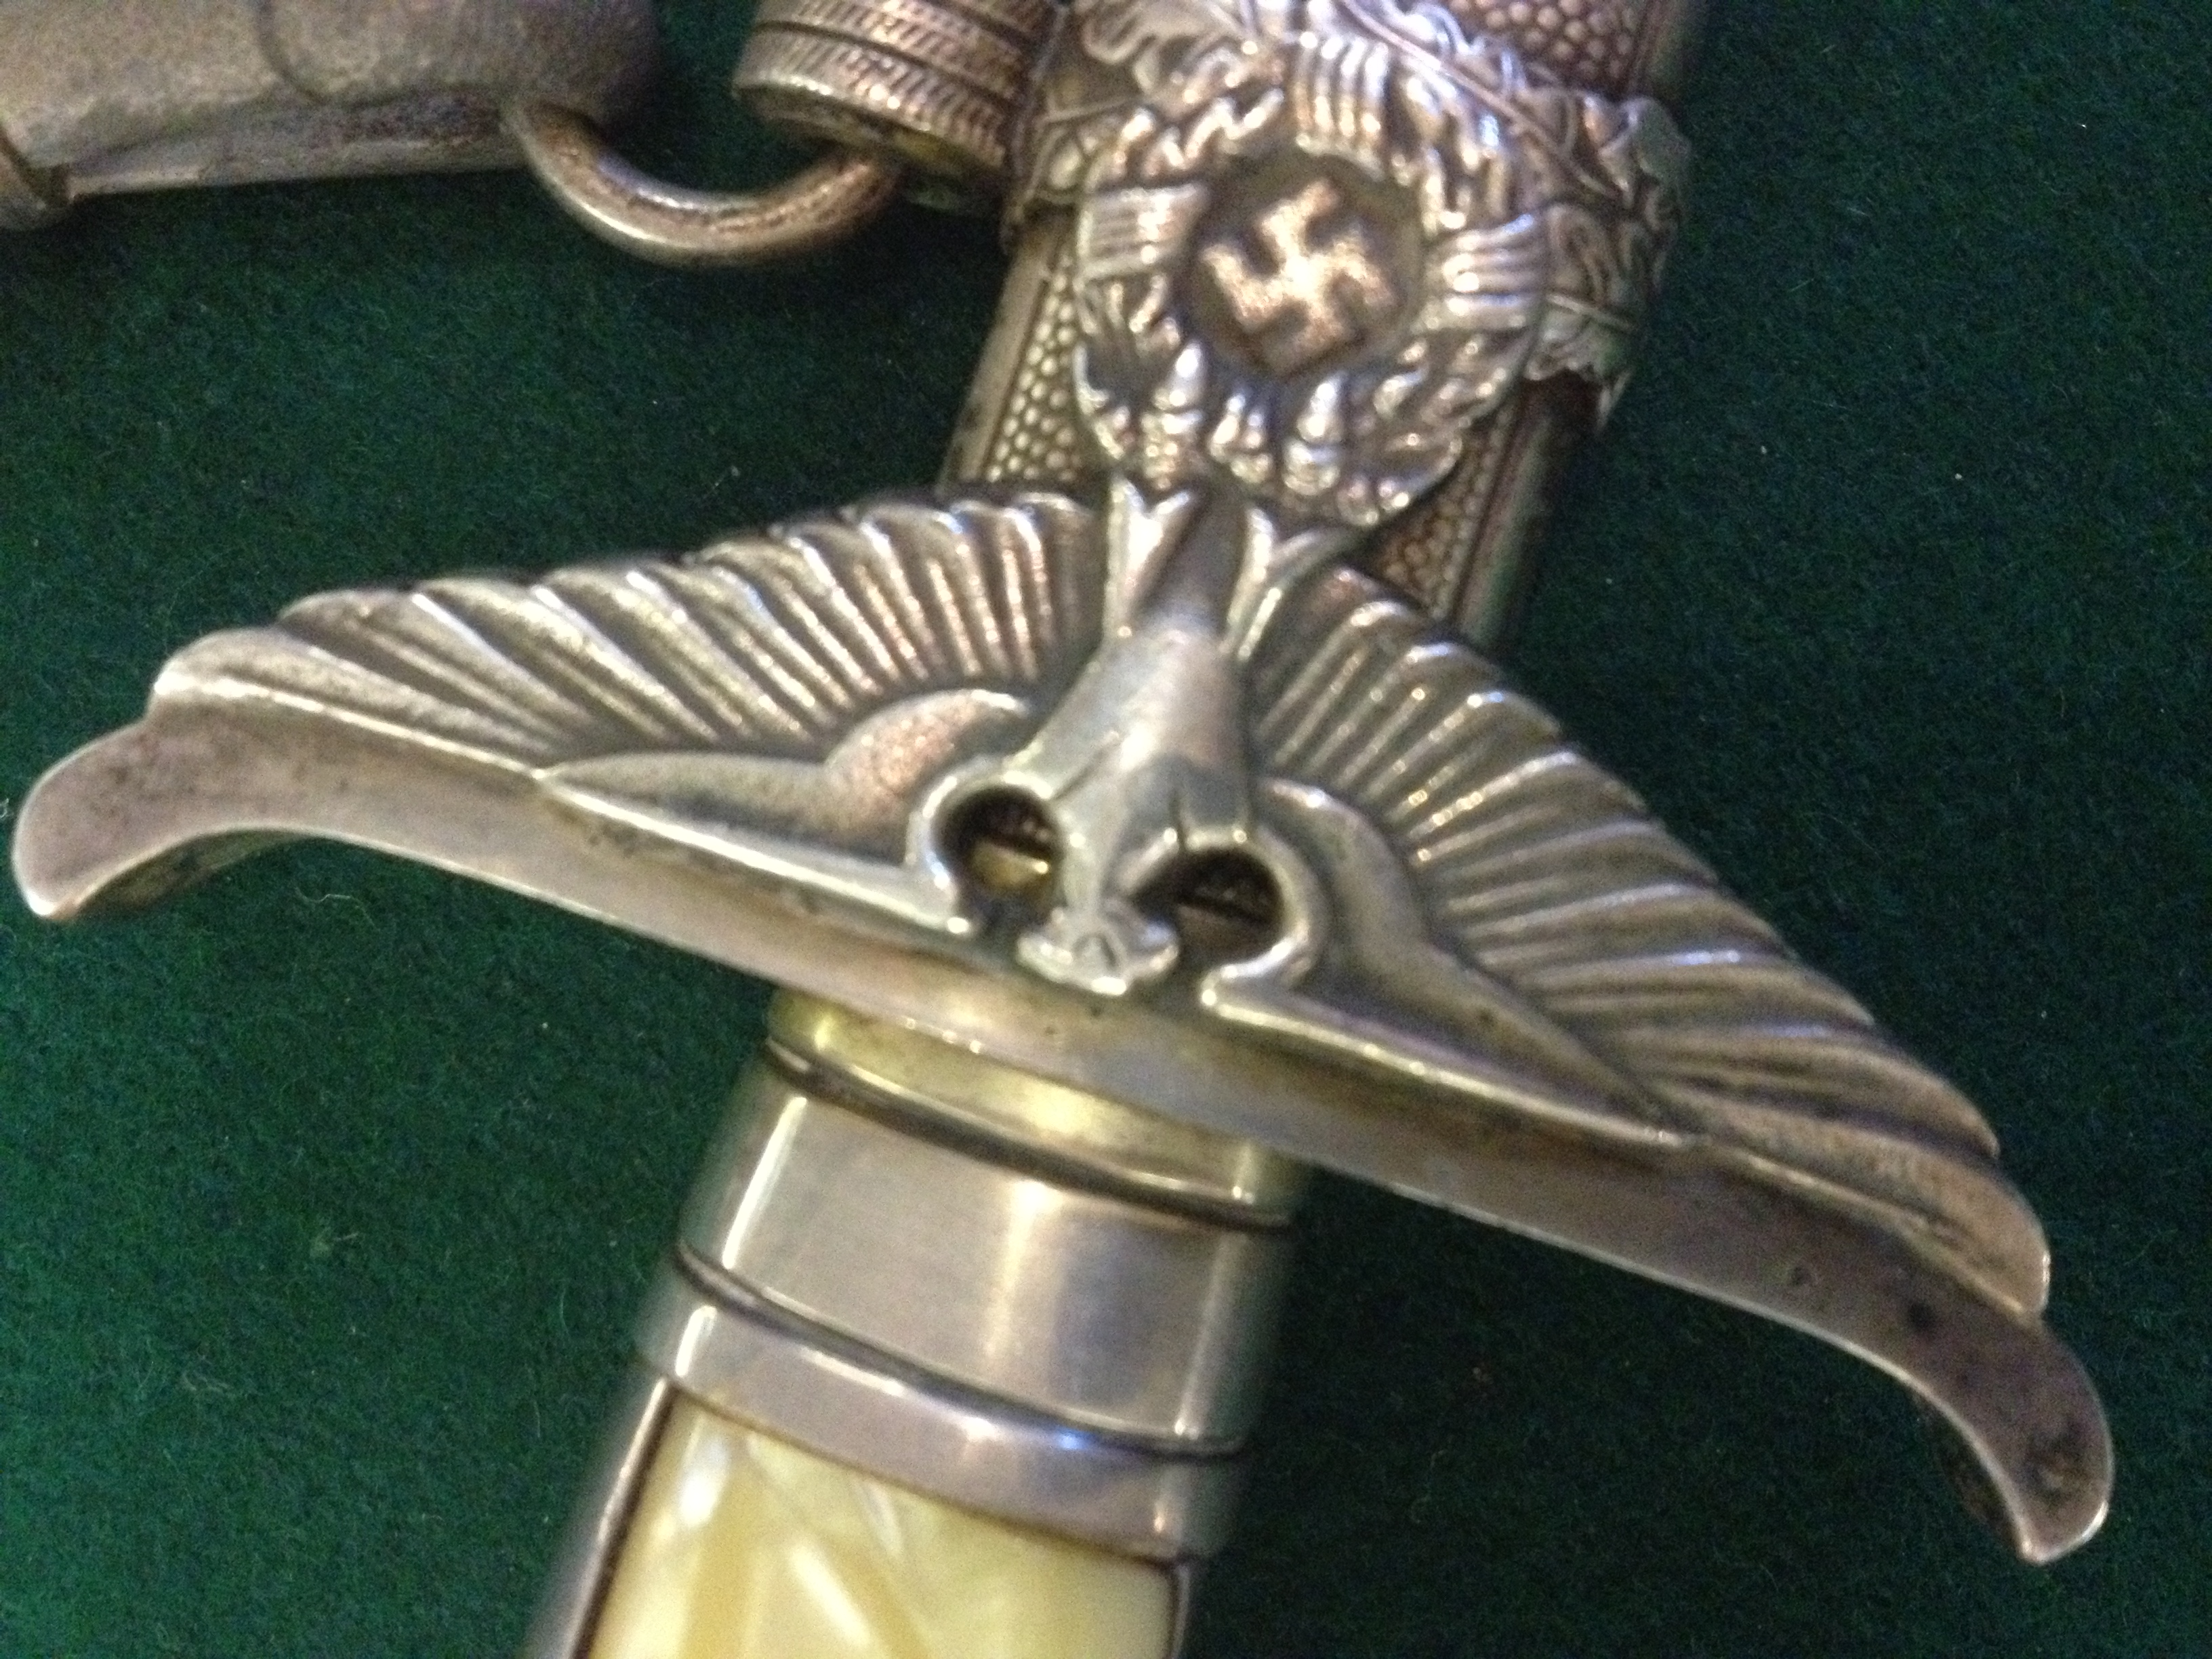 How do I sell a German WW2 Dagger ?